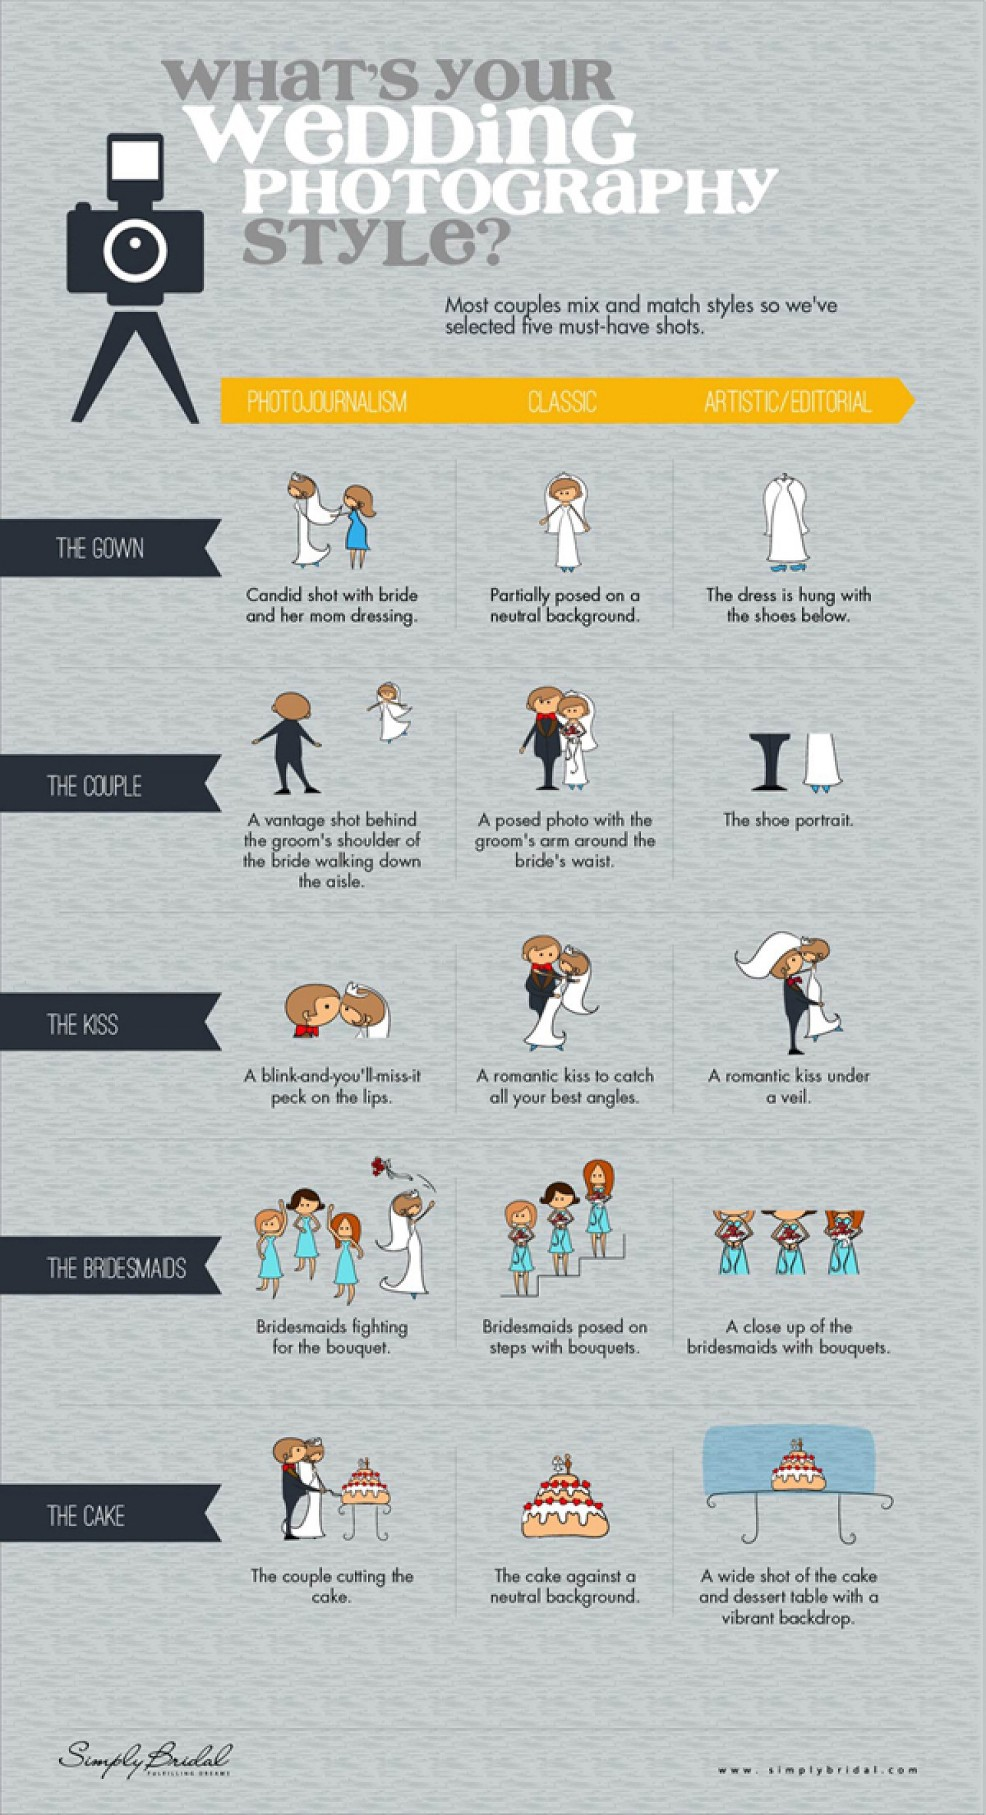 Infographic about wedding styles